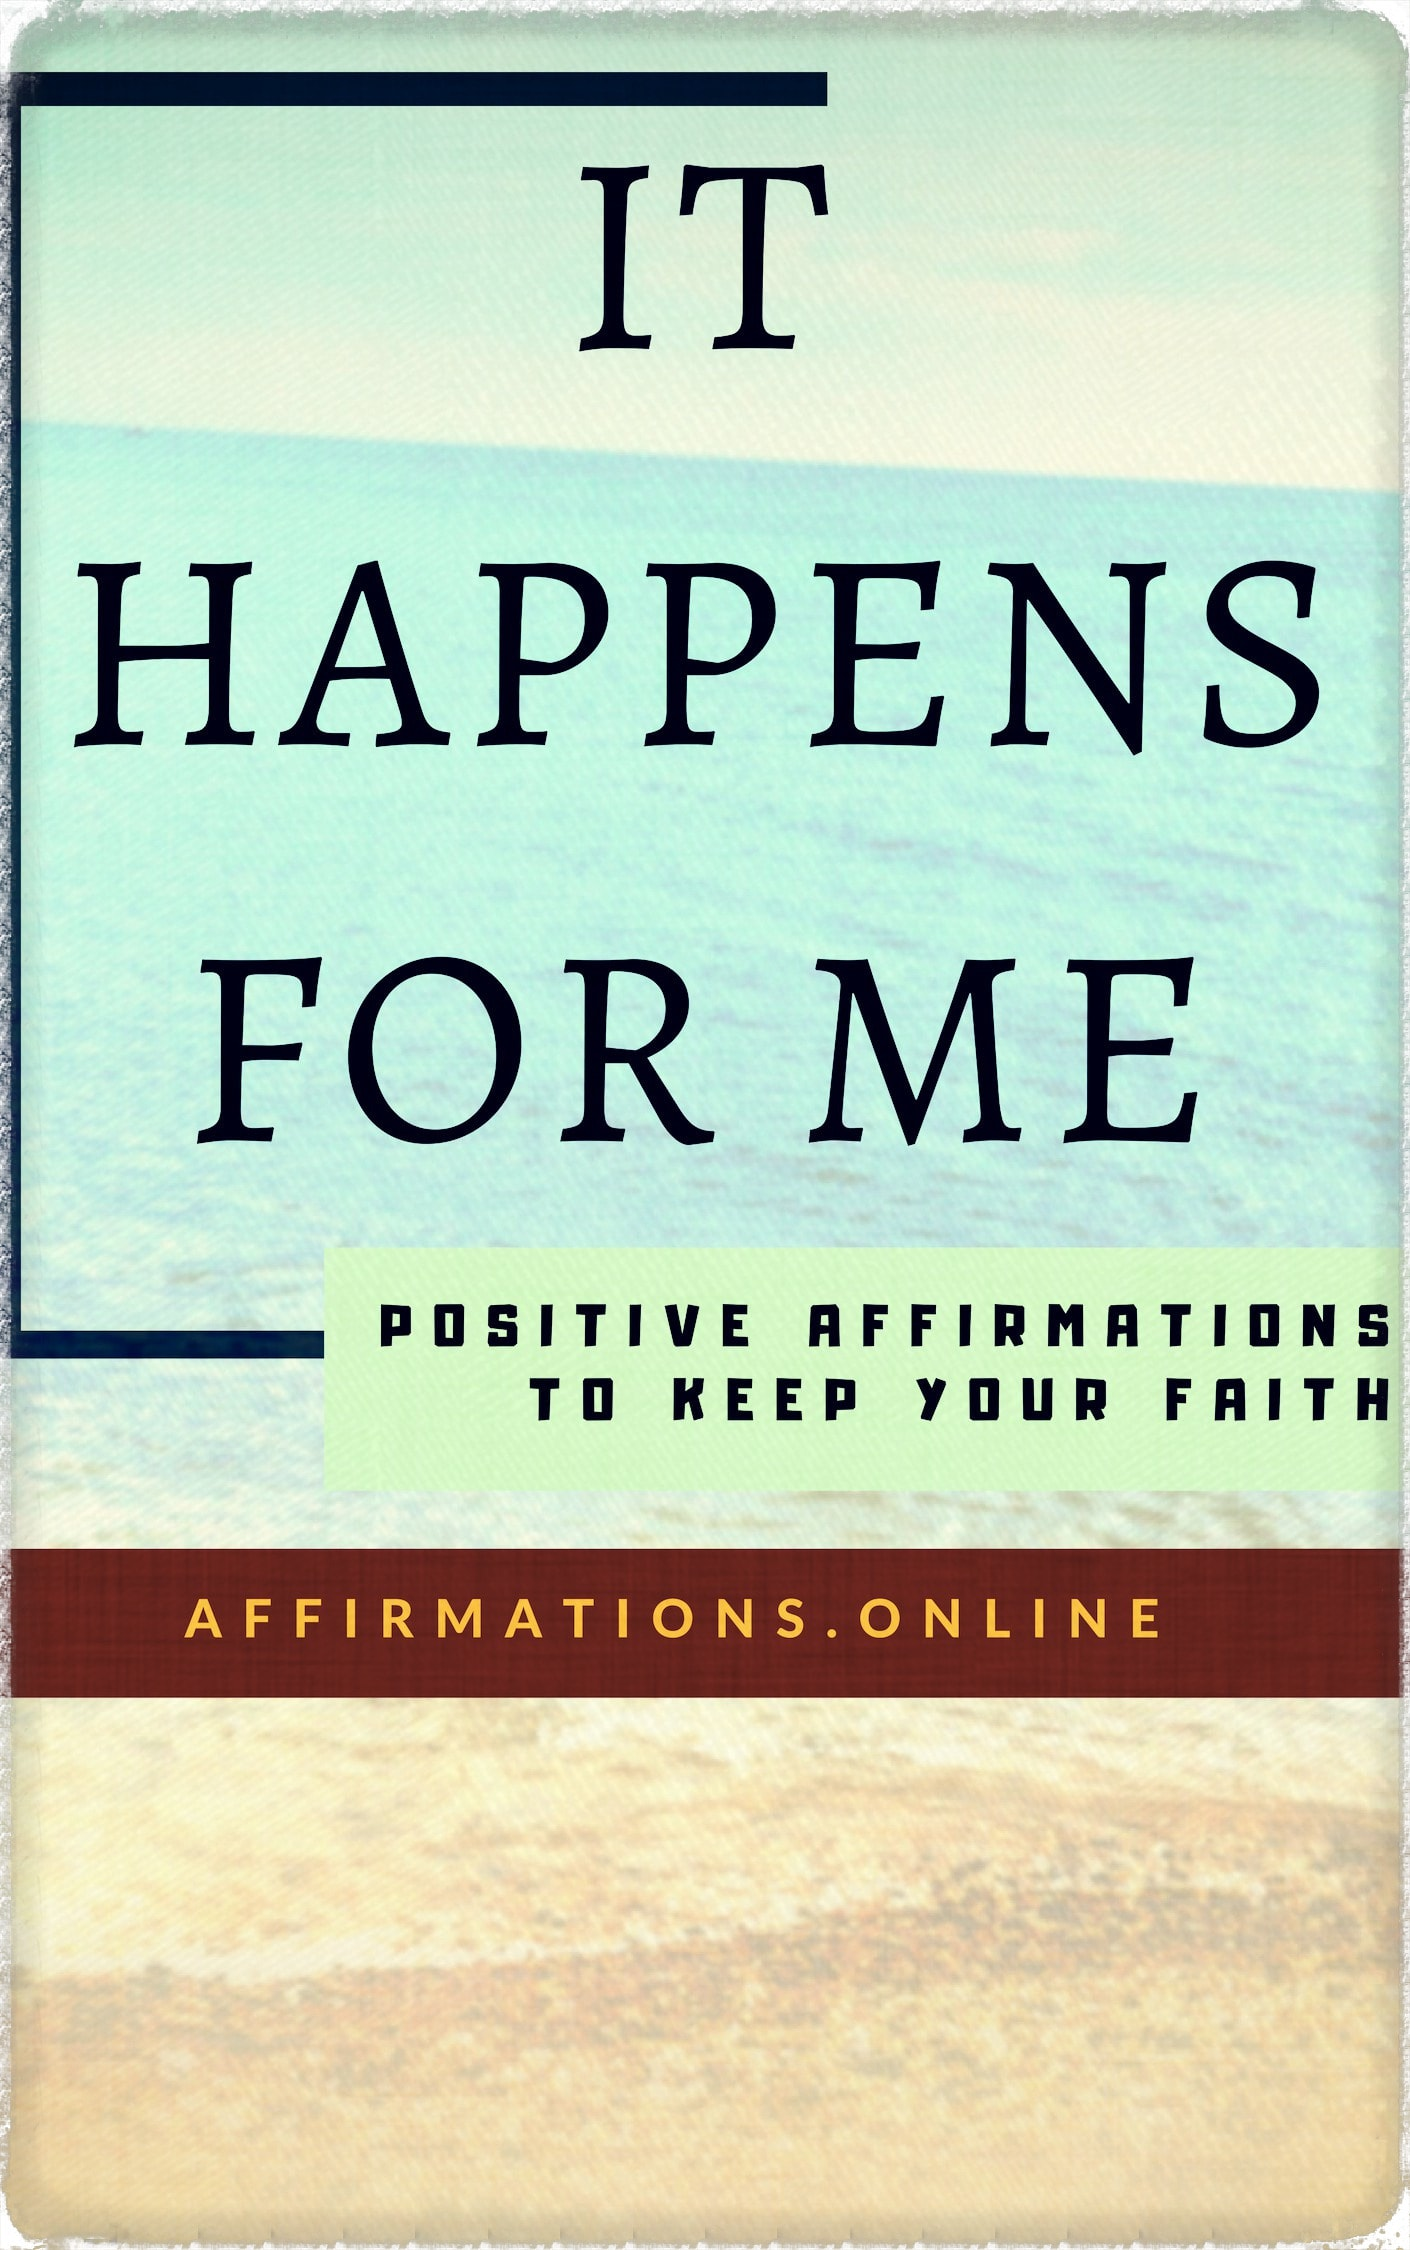 It Happens For Me - eBook cover - free affirmations eBook from affirmations.online